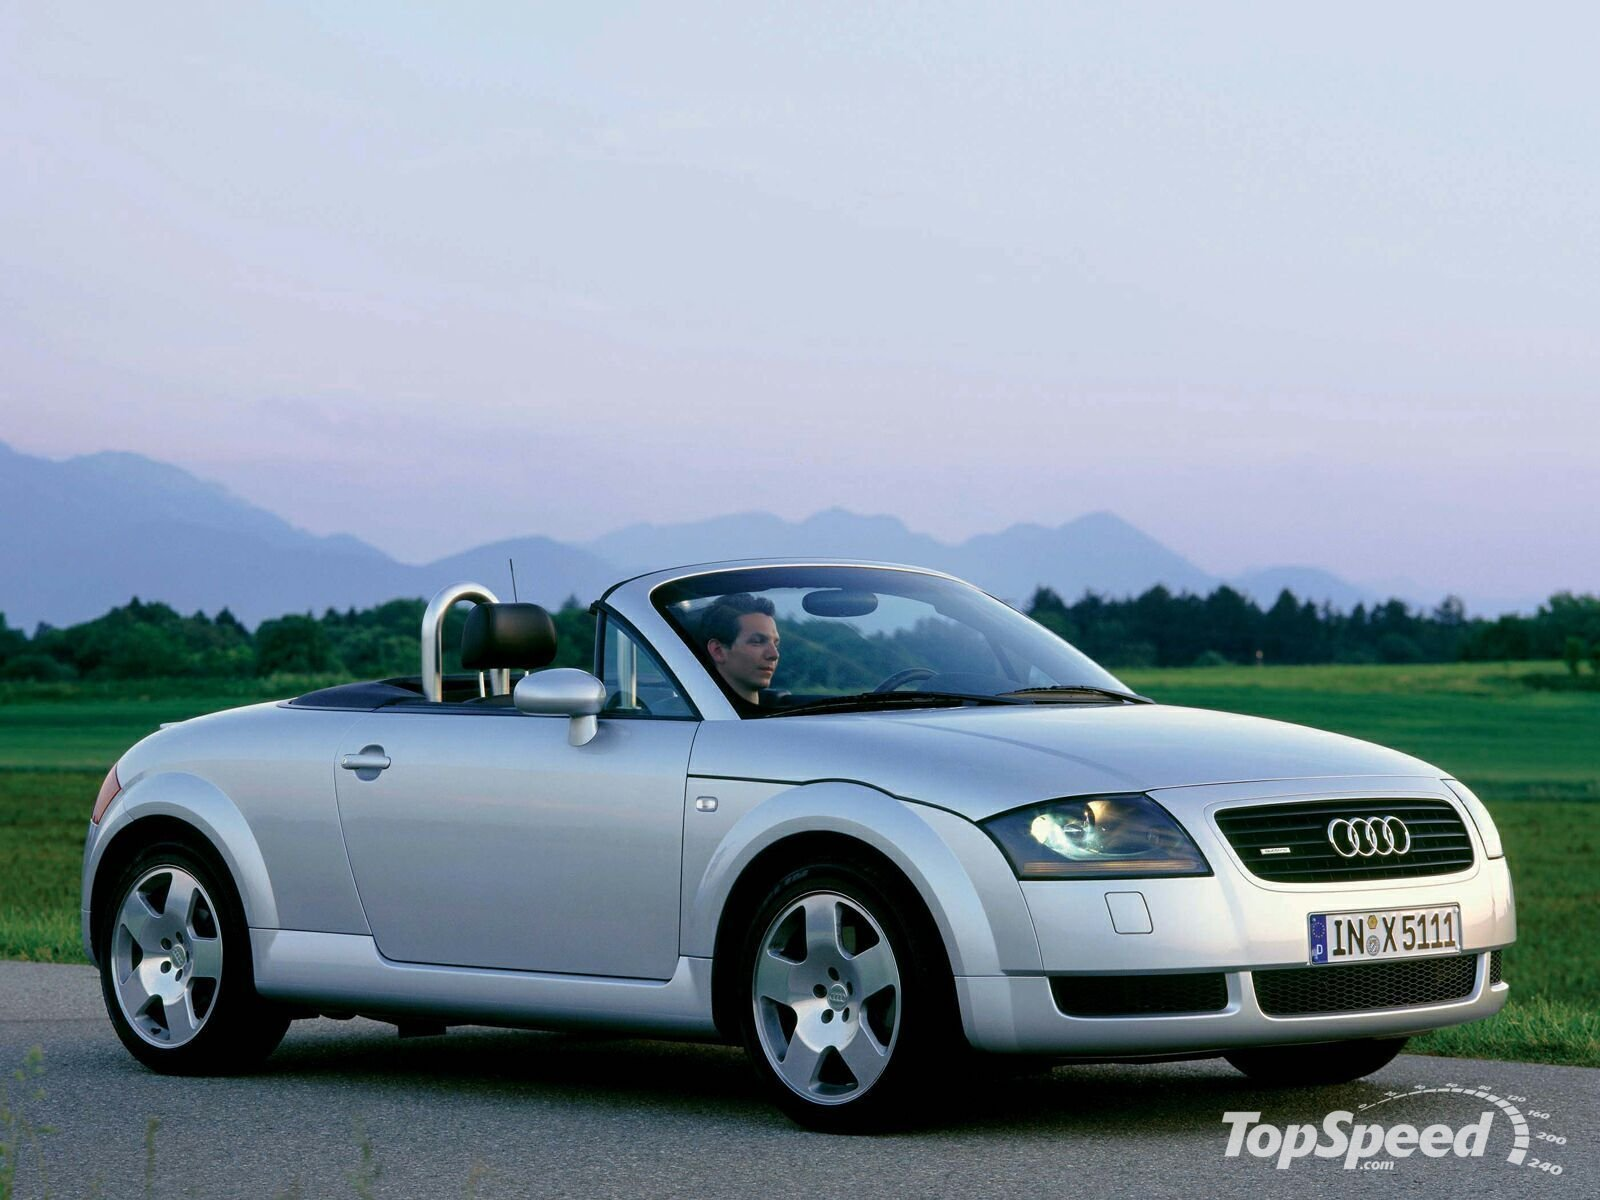 2003 audi tt roadster picture 30553 car review top speed. Black Bedroom Furniture Sets. Home Design Ideas